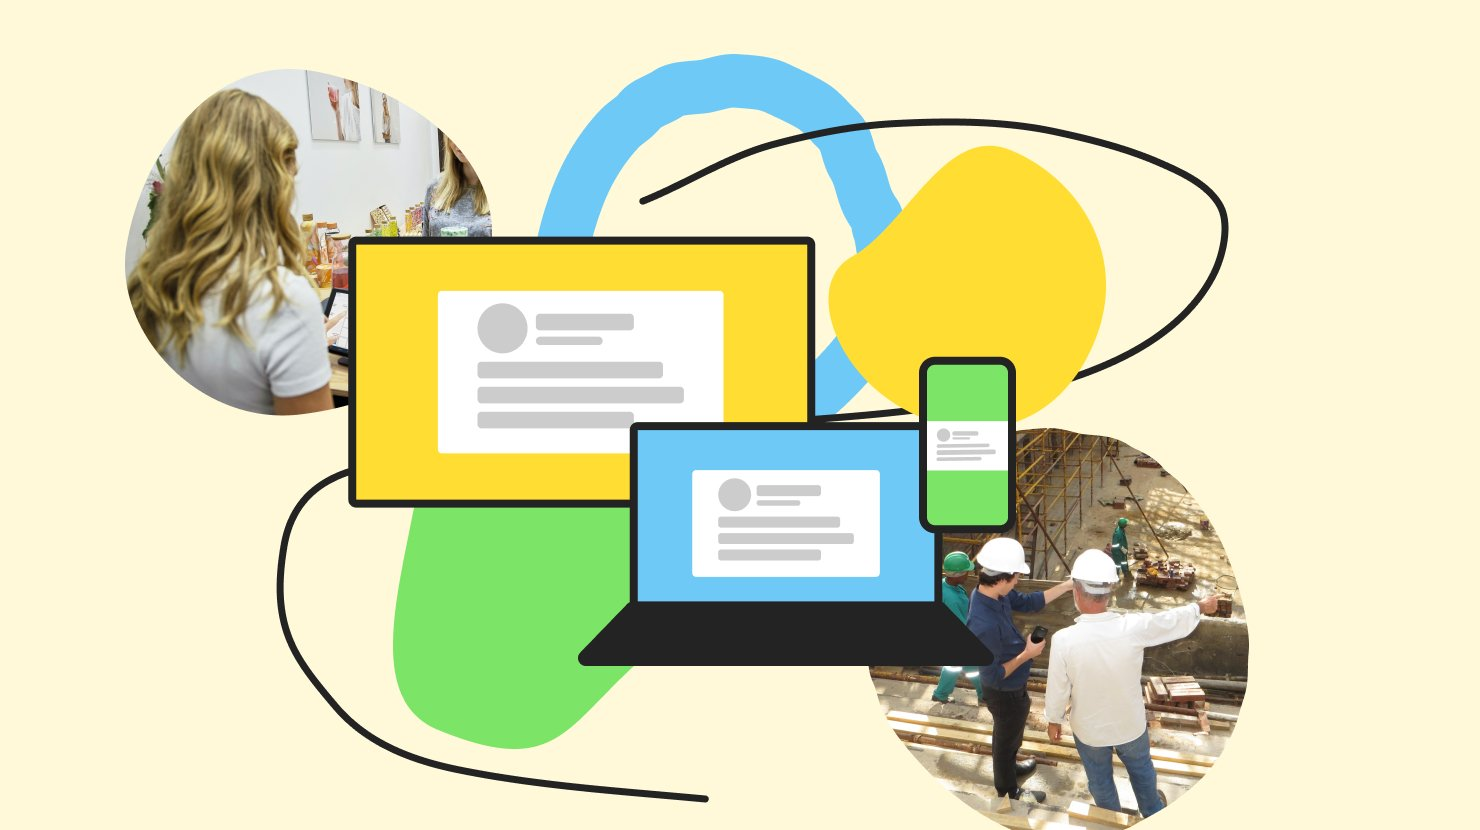 3 ways an intranet can connect and engage deskless employees